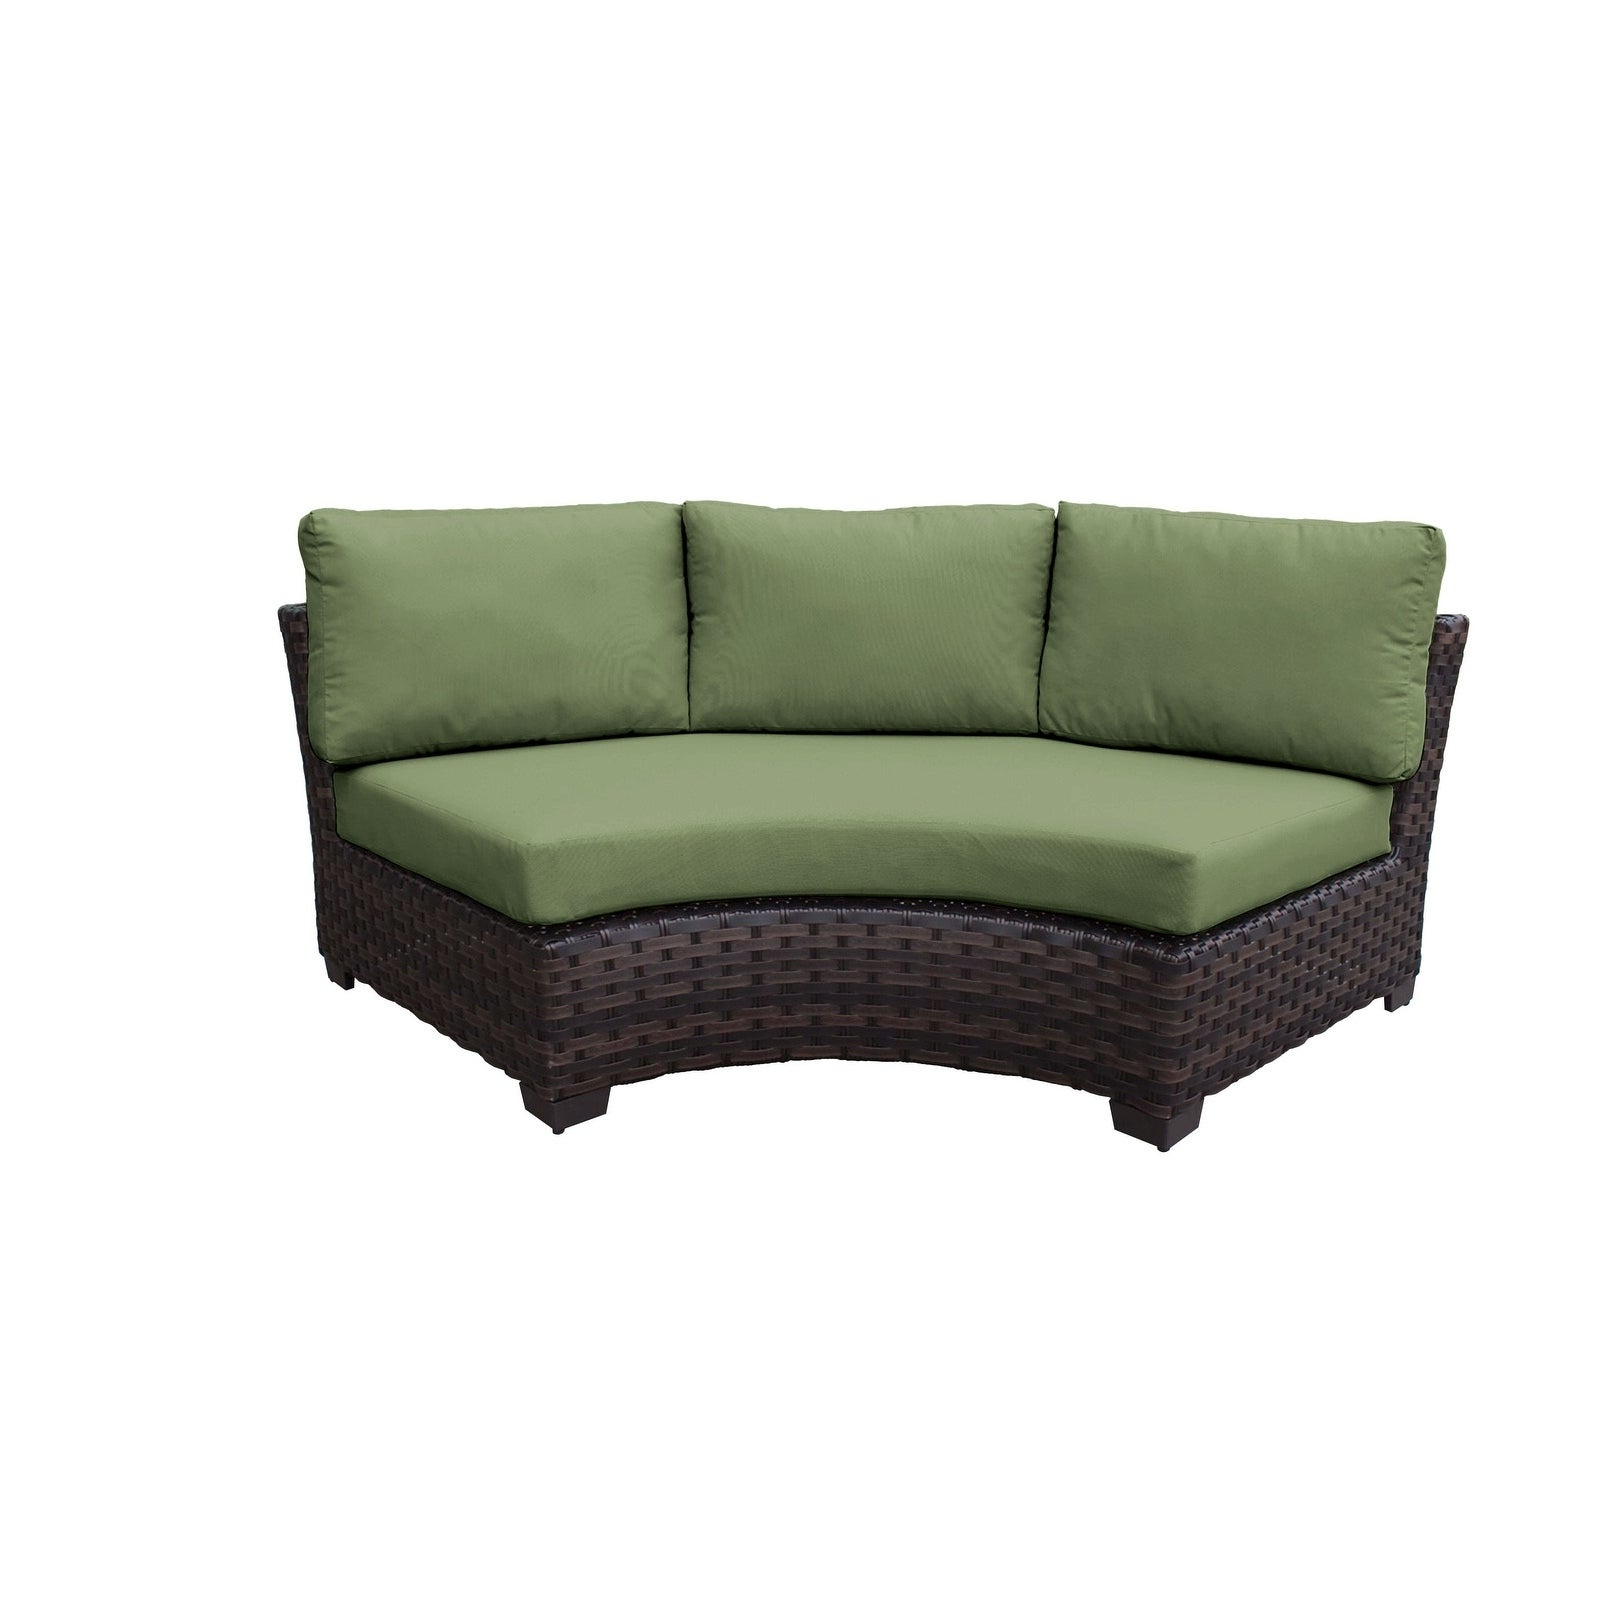 Most Current Camak Patio Loveseats With Cushions For Kathy Ireland River Brook 6 Piece Outdoor Wicker Patio Furniture Set 06C (View 12 of 20)